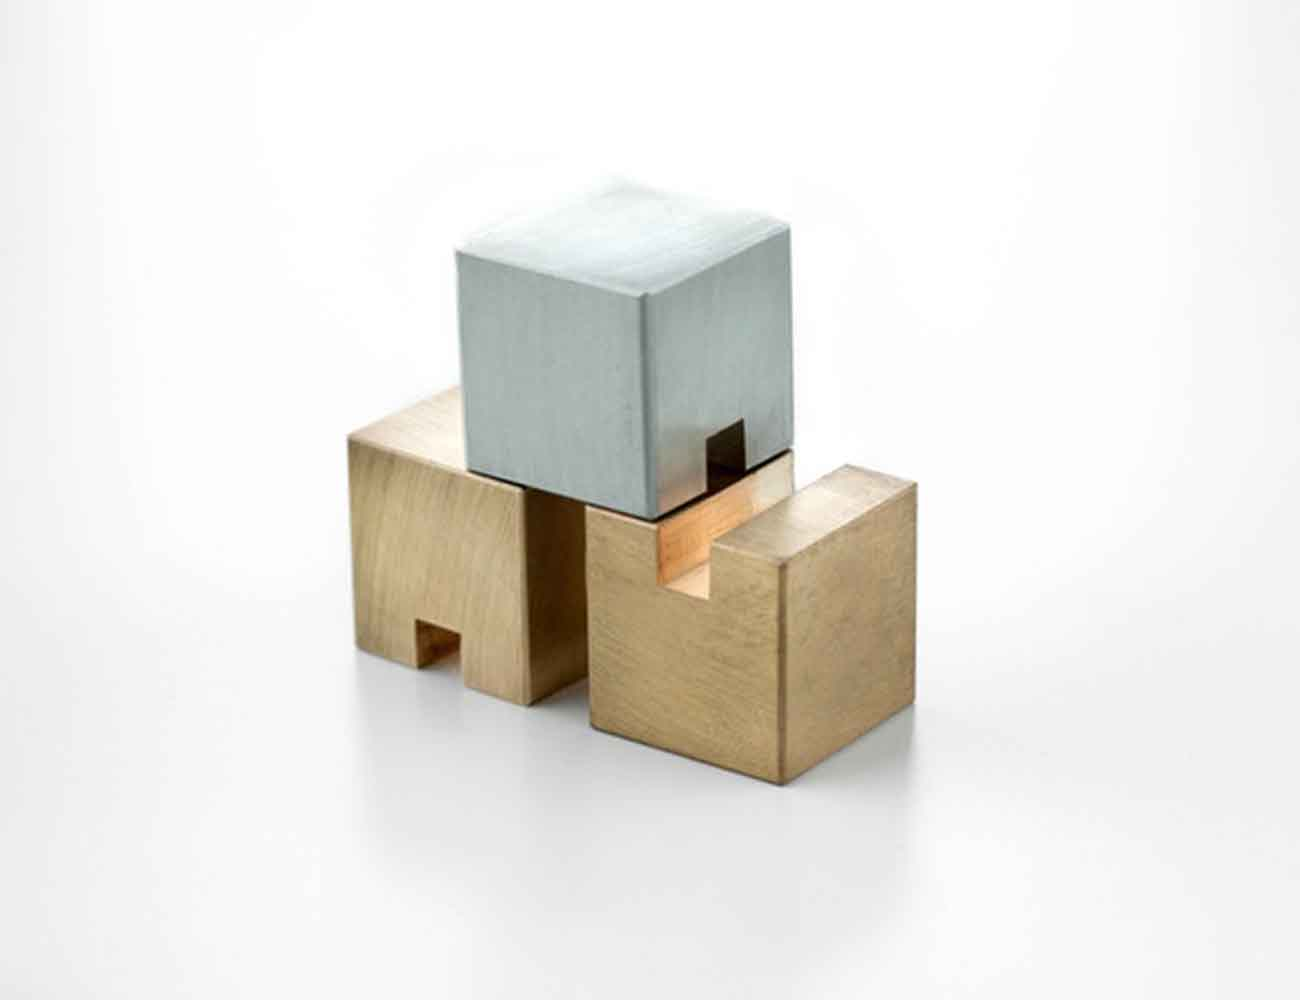 STACKS – Metal Cube Desk Accessories & Desk Organizer